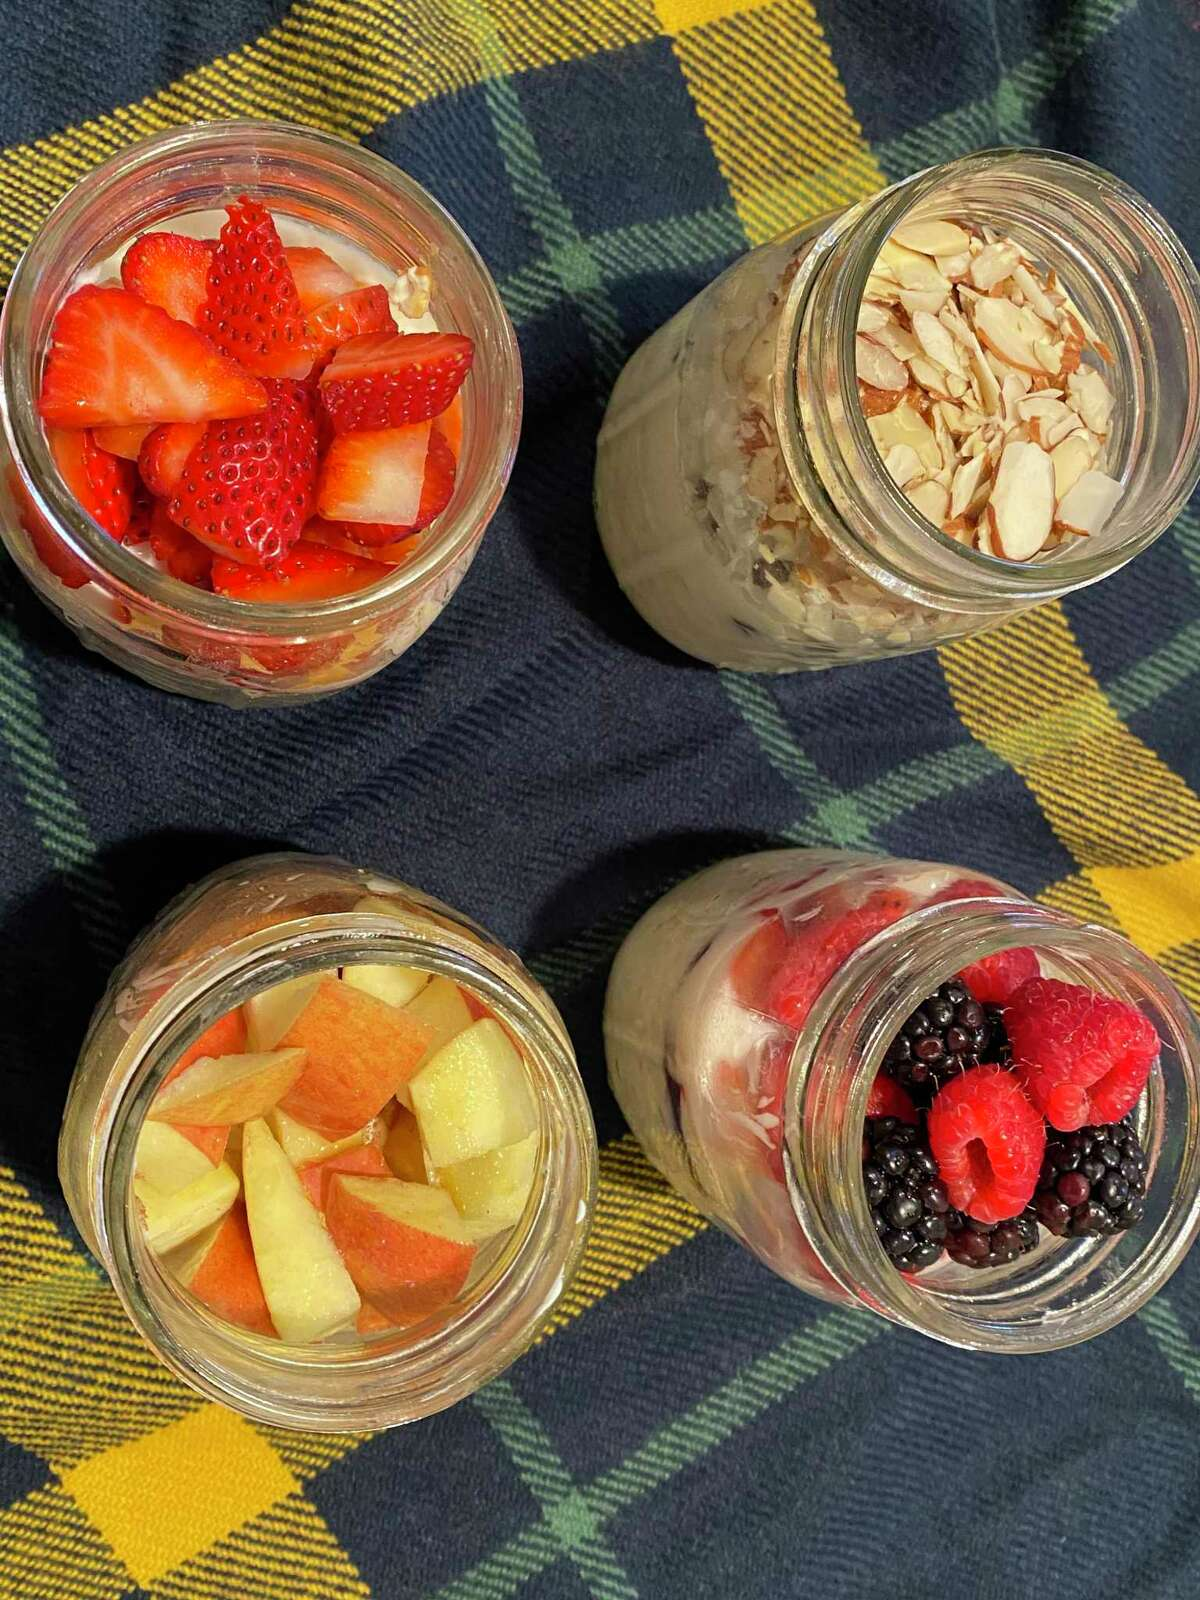 Overnight oats are a versatile and travel friendly breakfast.